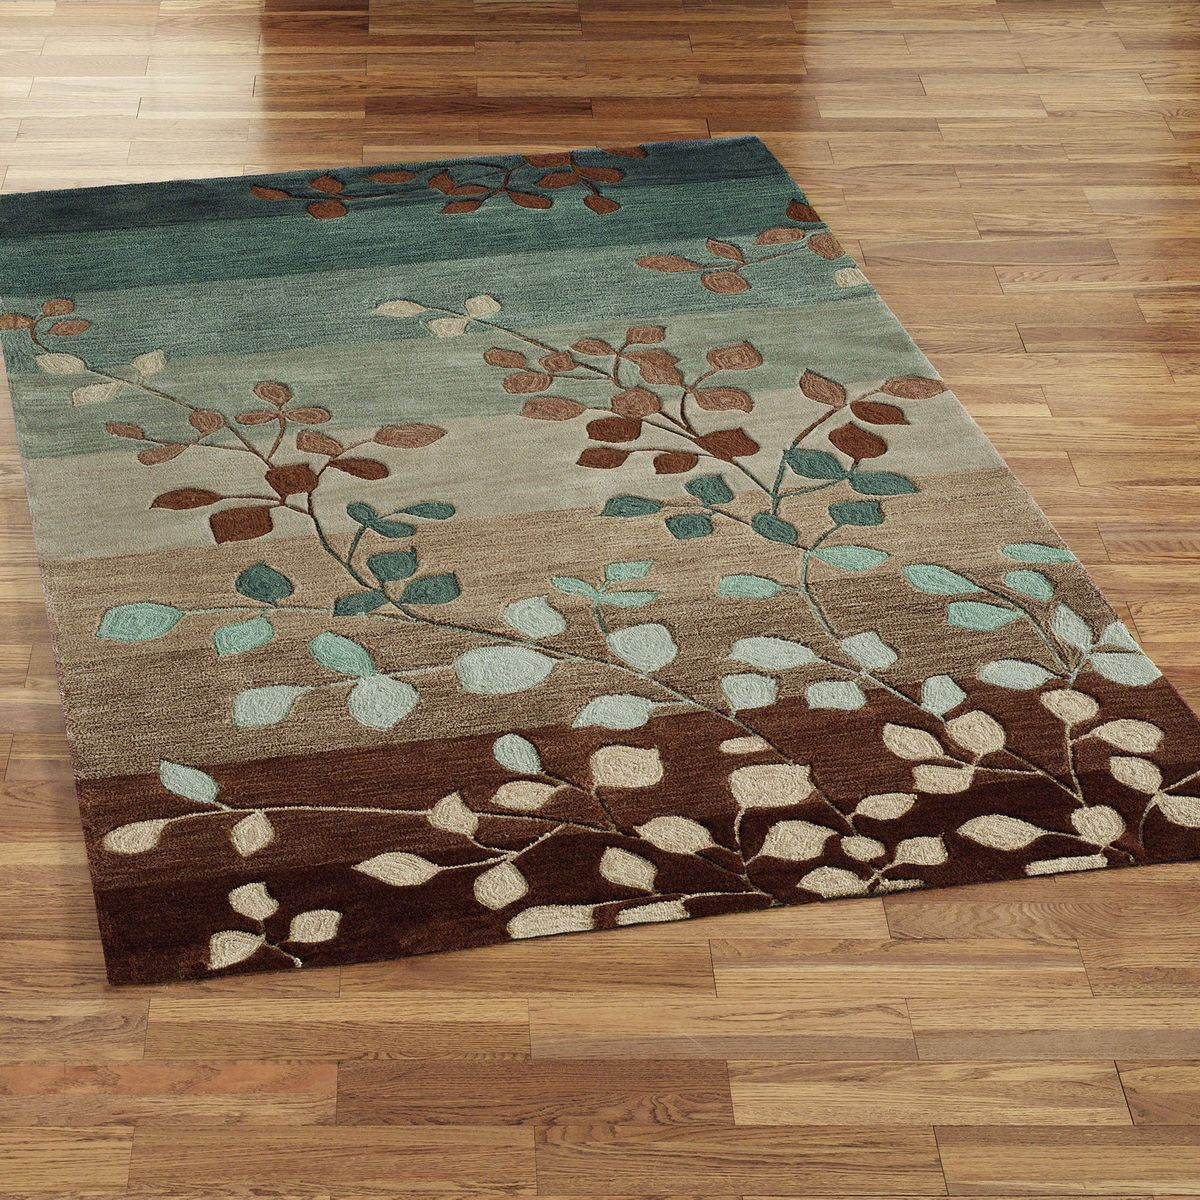 Beautiful Gradition Style Rug Decorating Ideas With Simple Square Shaped Design And Amazing Leafs Pattern